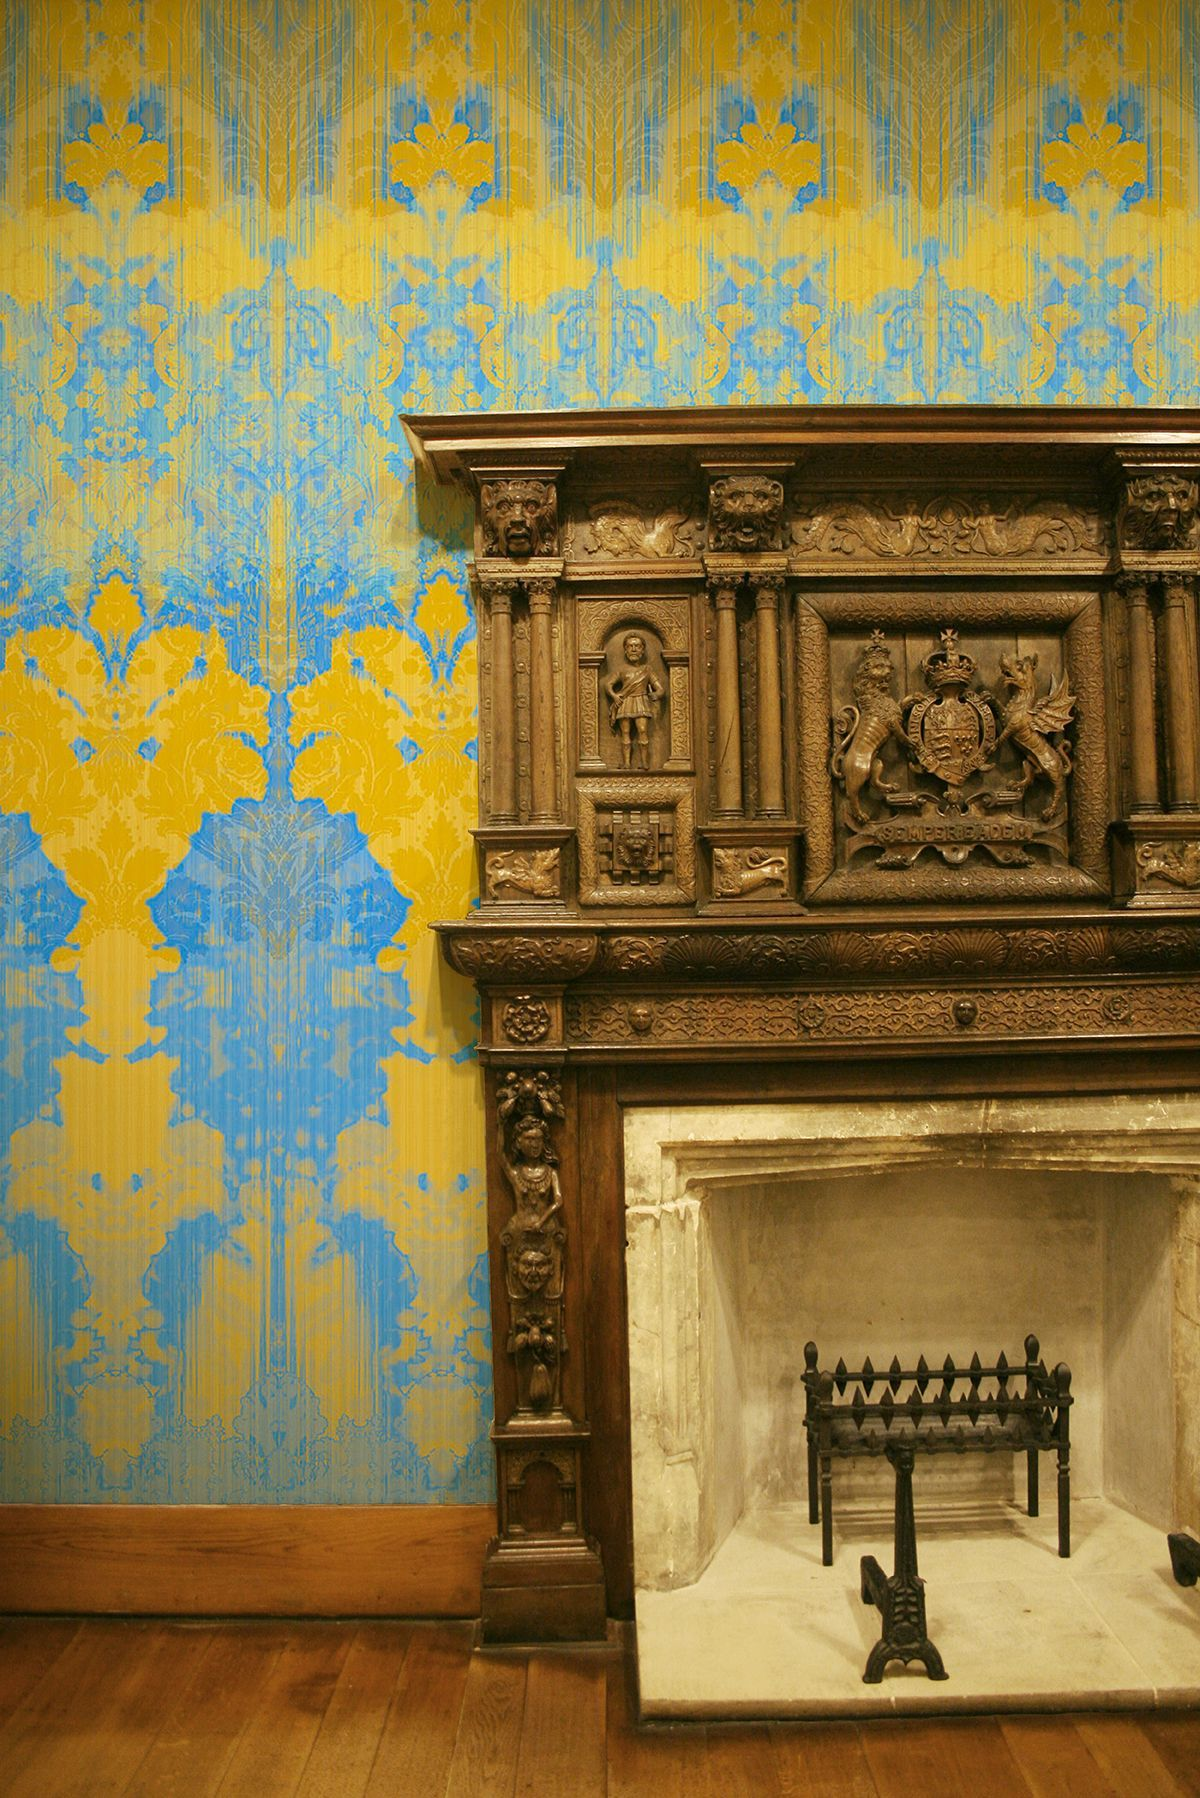 Hallway wallpaper or paint  Timorous Beasties Wallcoverings  Ikat Damask  The Whimsical World